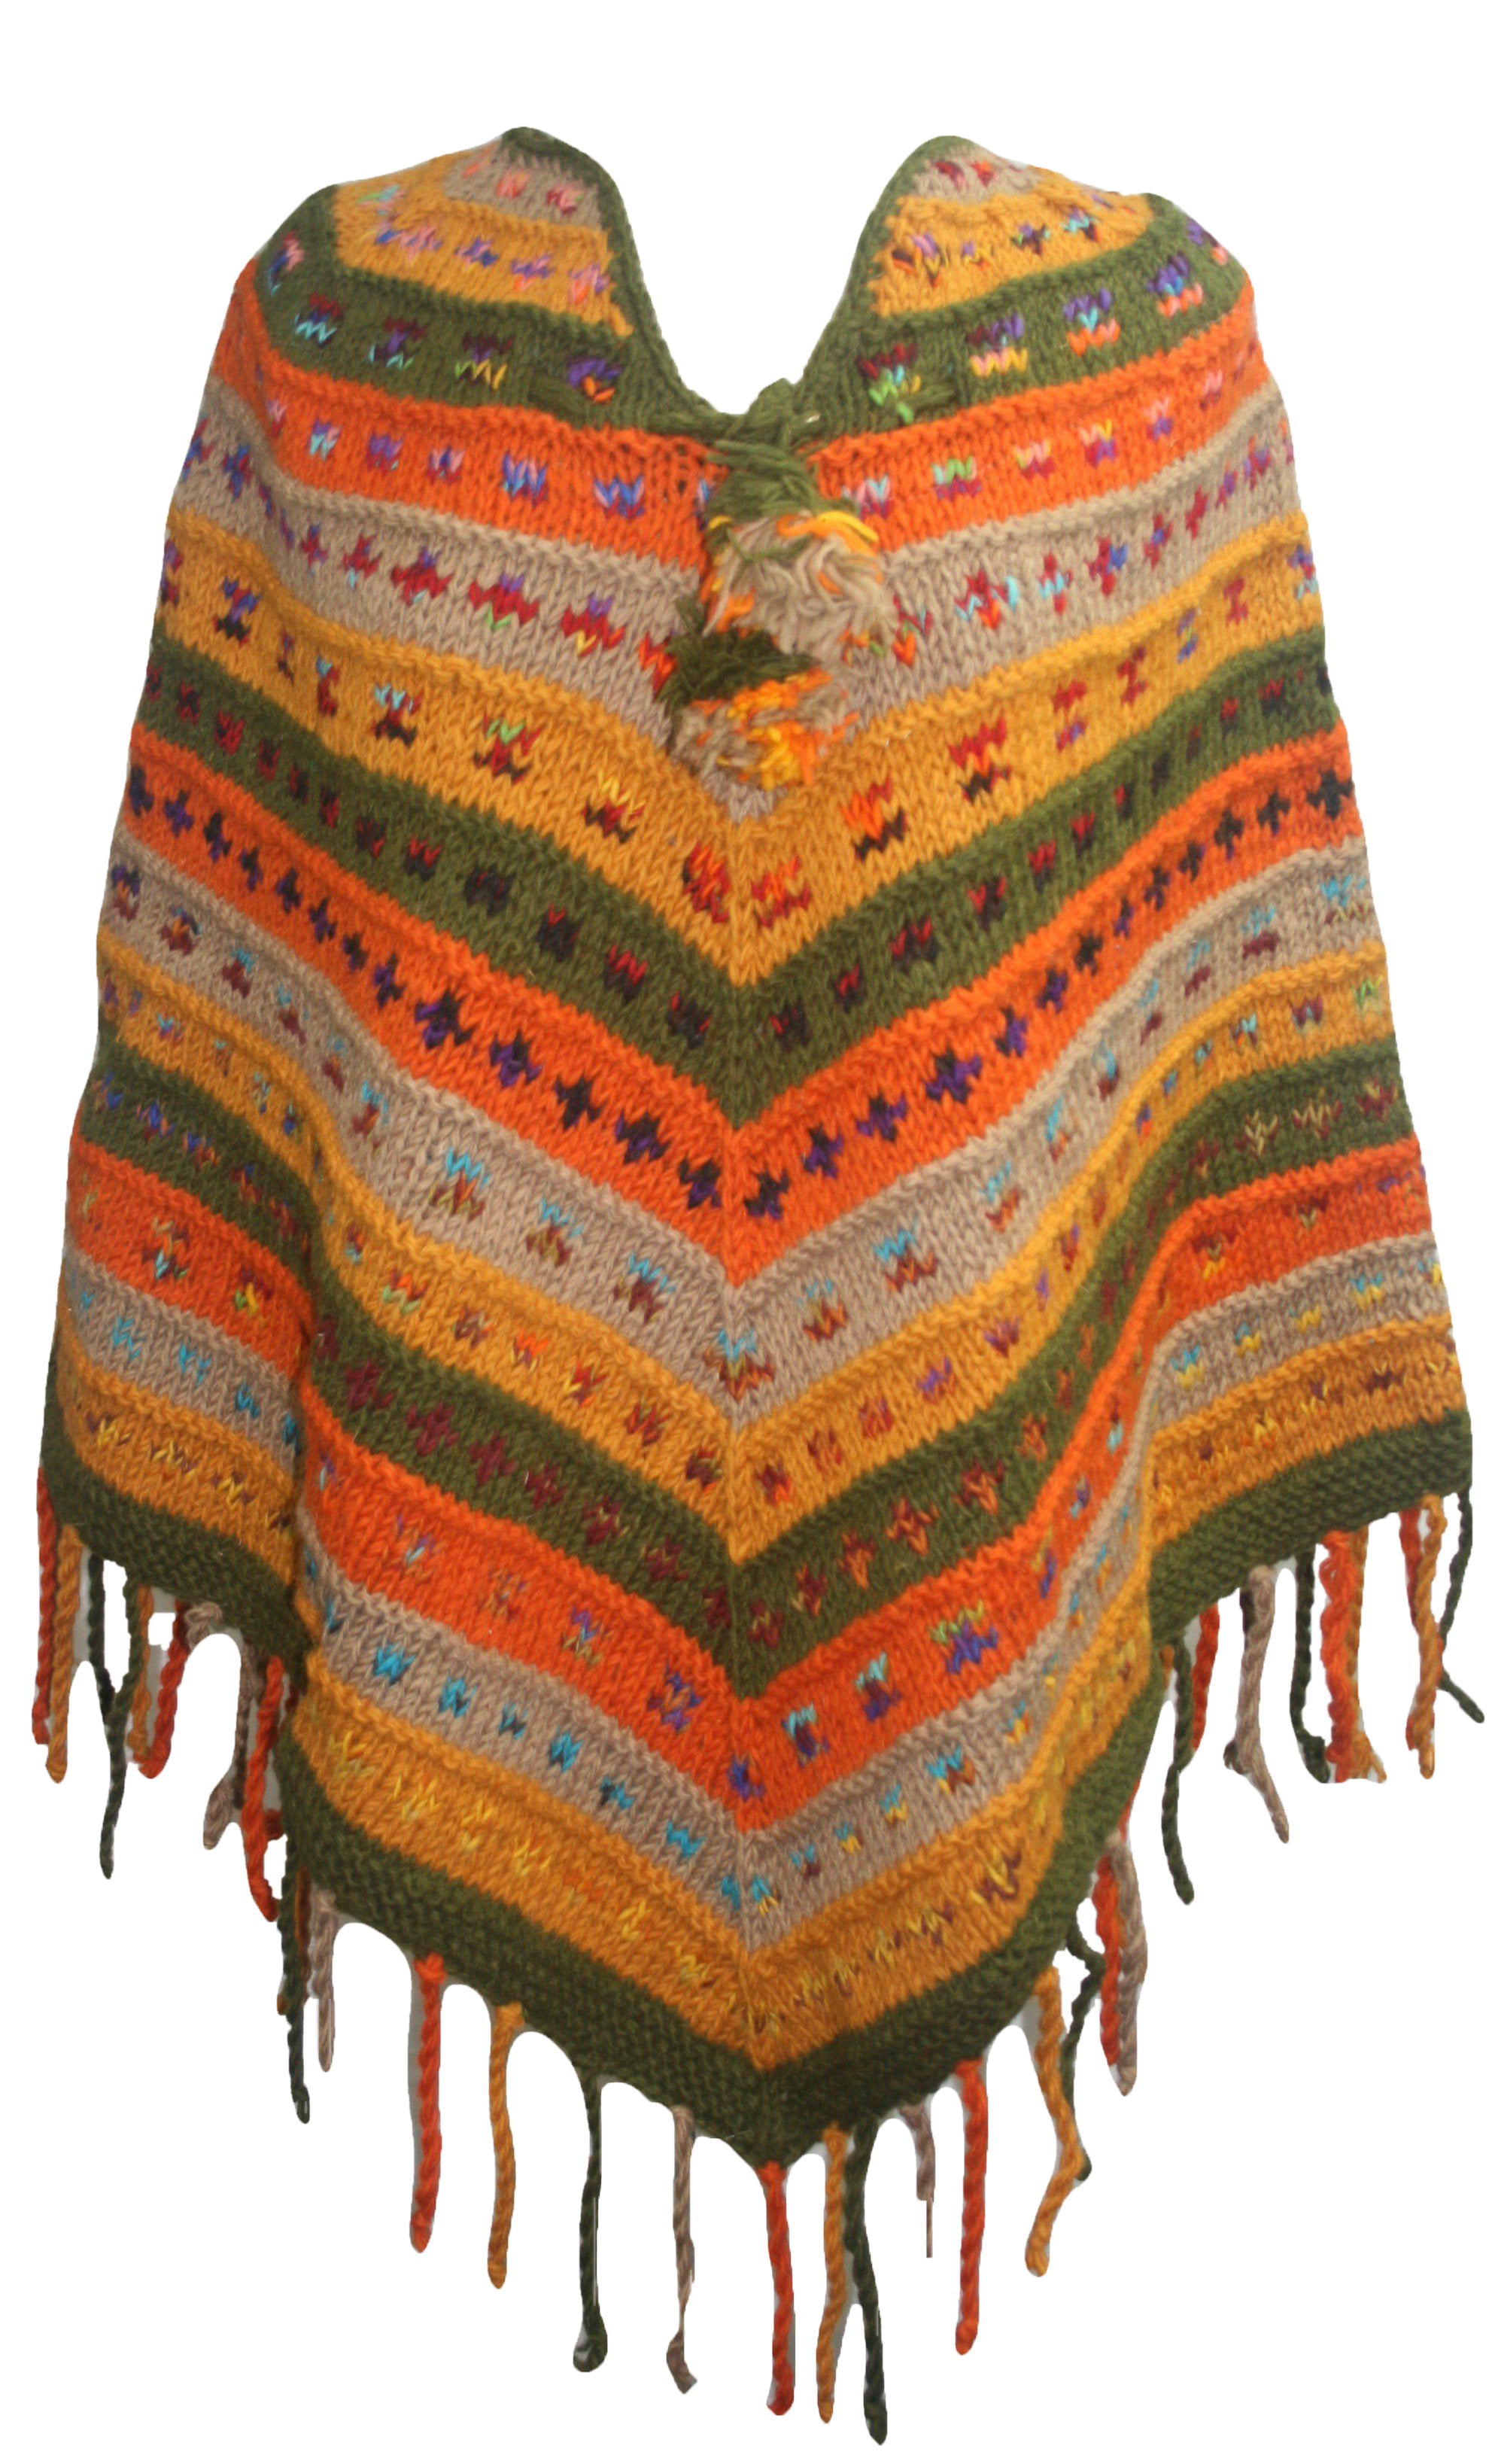 PN 200 Himalayan Thick Sheep Wool Hand Knitted Poncho - Agan Traders, PN 200 18